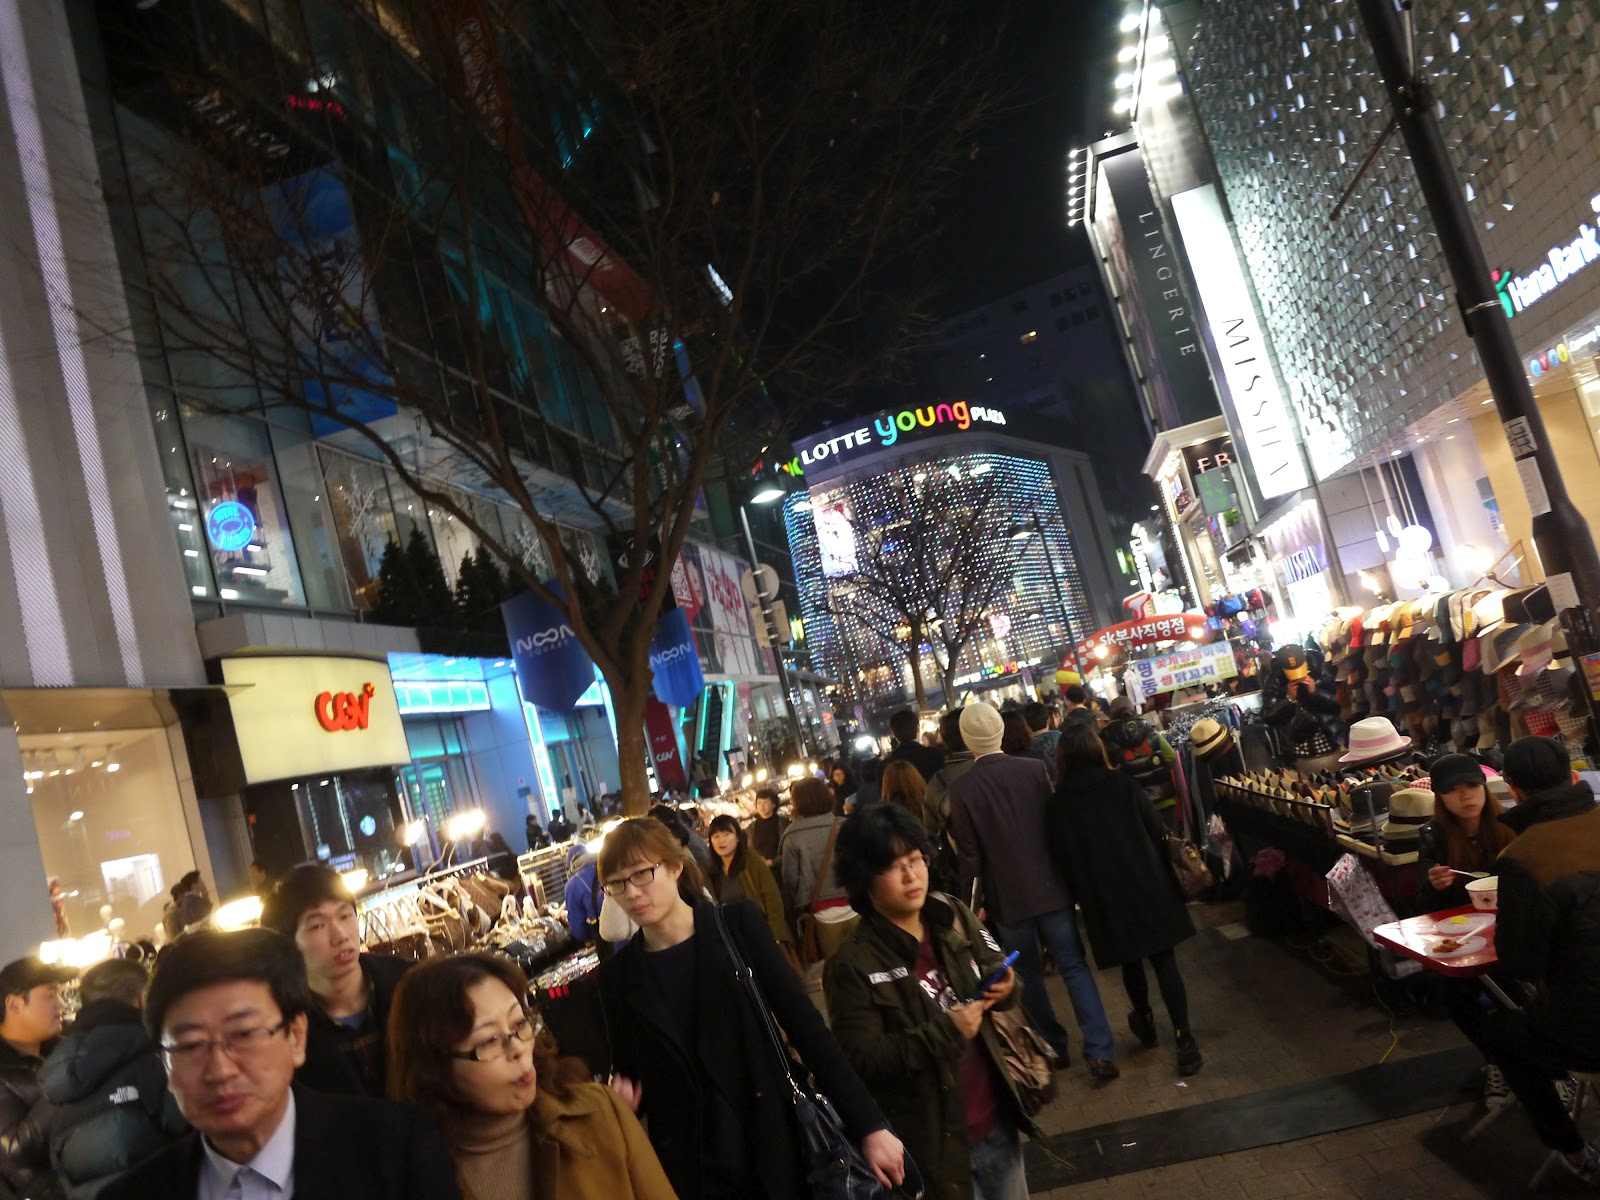 The streets of the Myeongdong district of Seoul are quite crowded every night with many tourists.